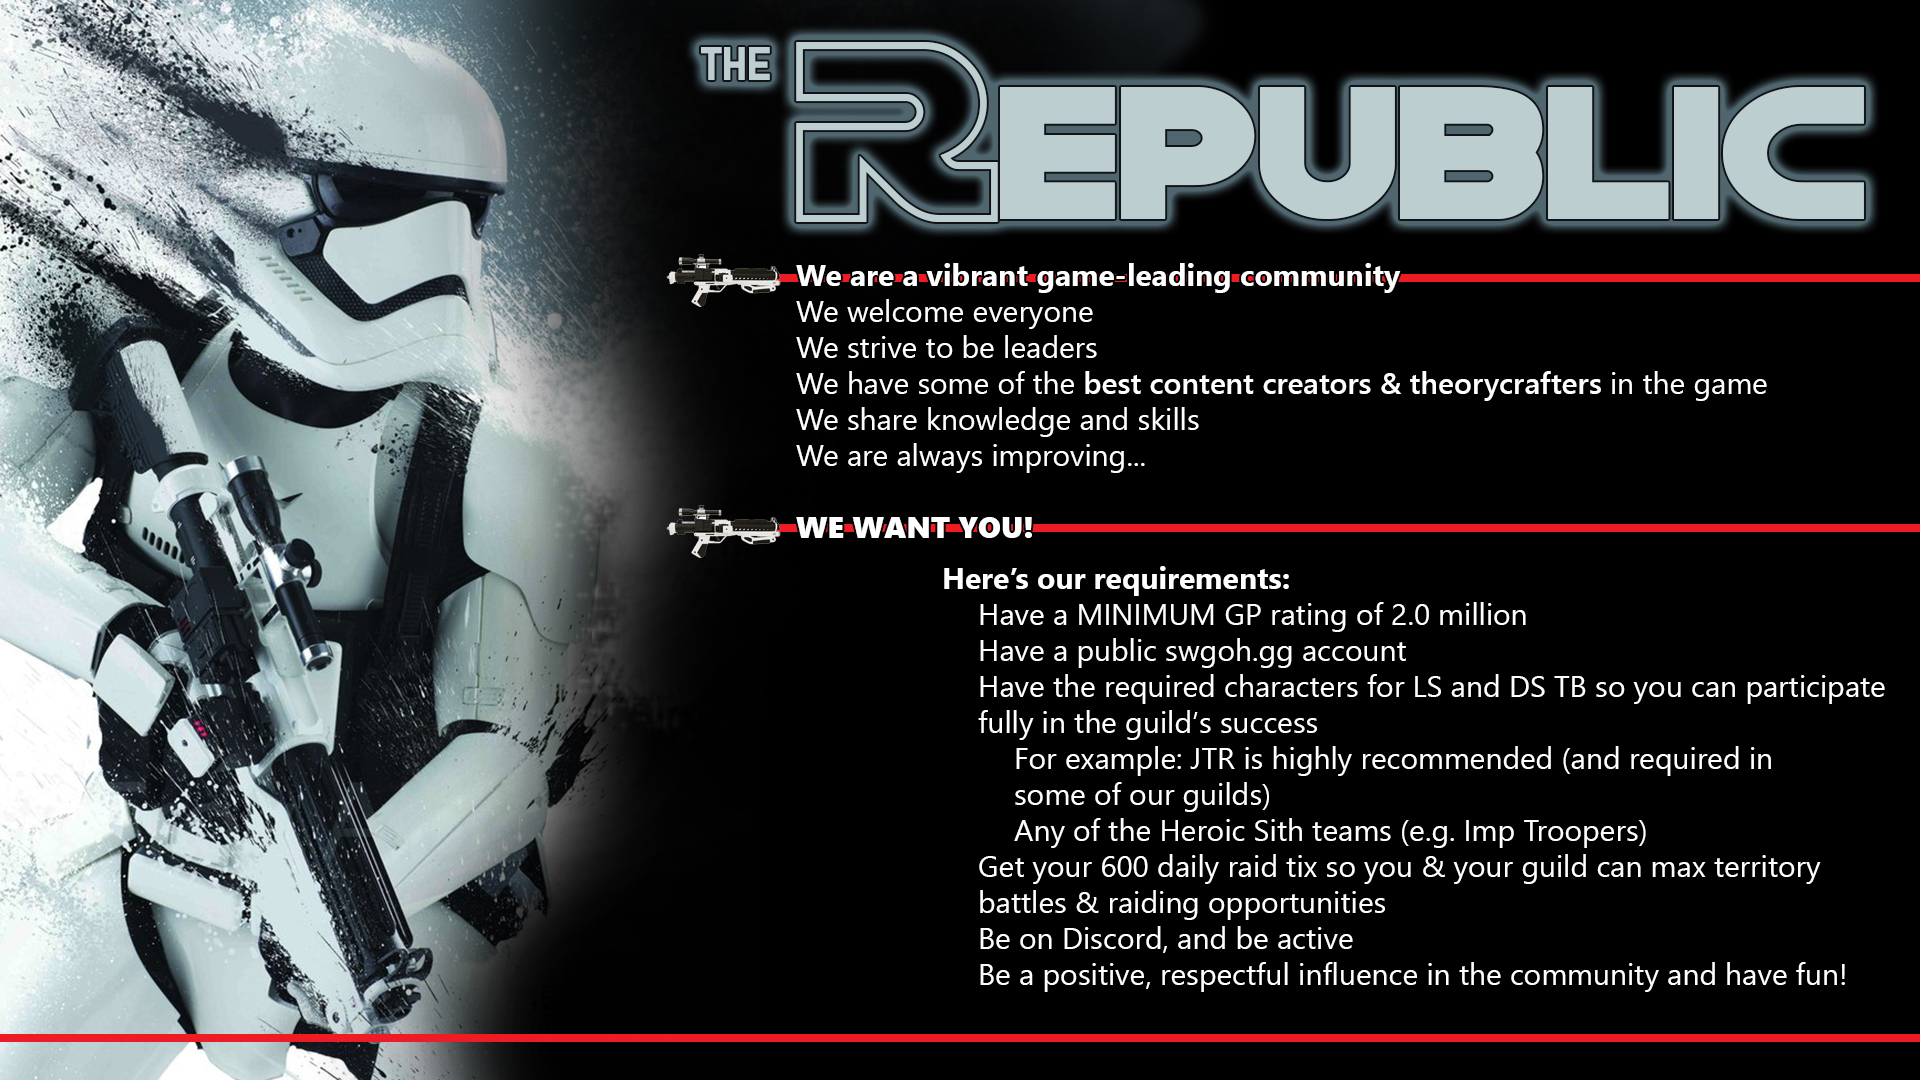 Republic-Full_Text_3.jpg